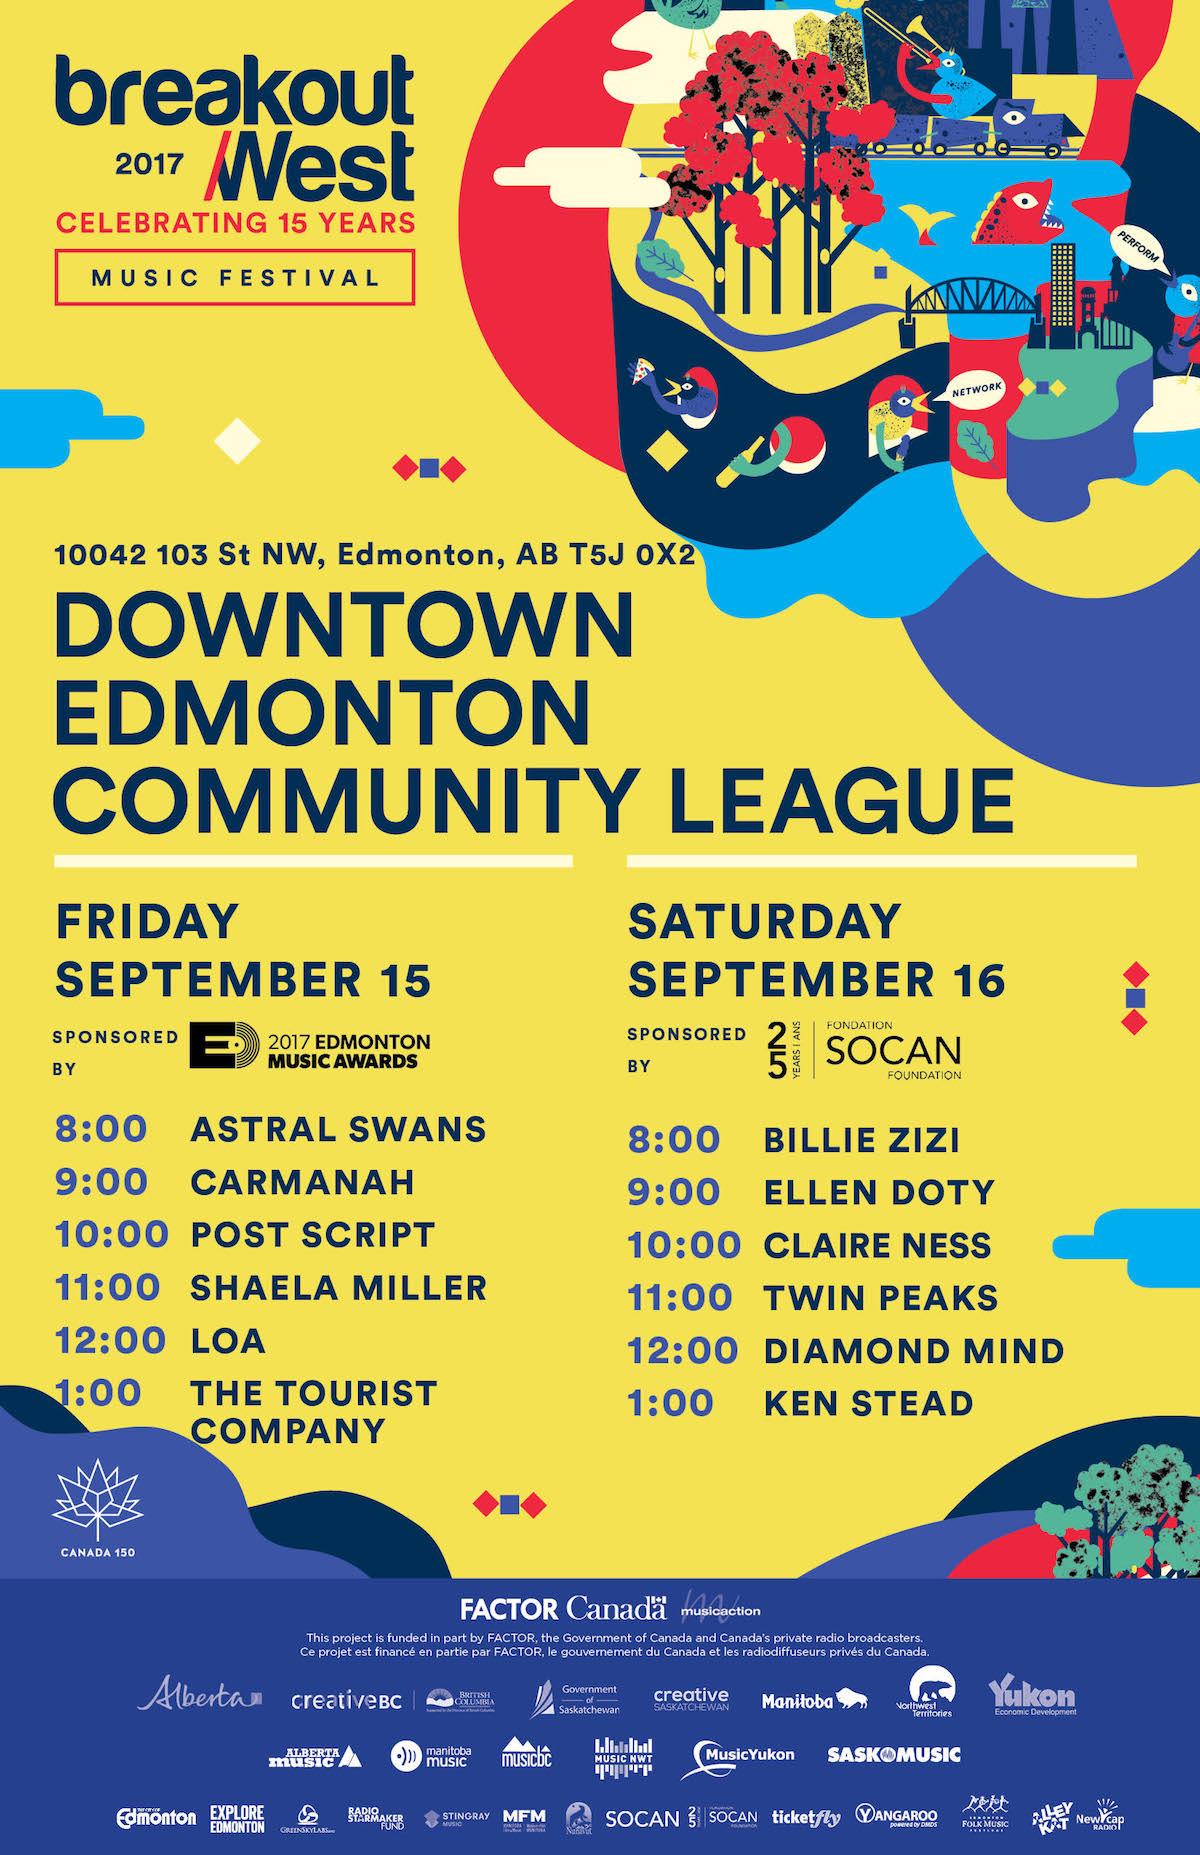 BOW Downtown Community League copy.jpg